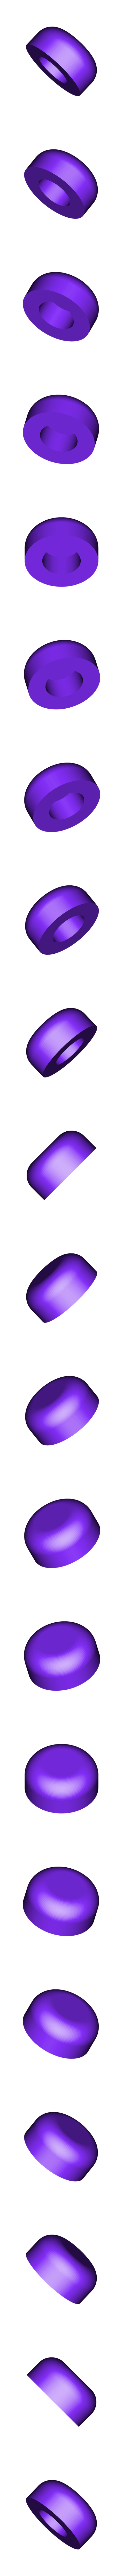 arm-connectA2.stl Download free STL file Mechnolia • 3D printing template, ChrisBobo